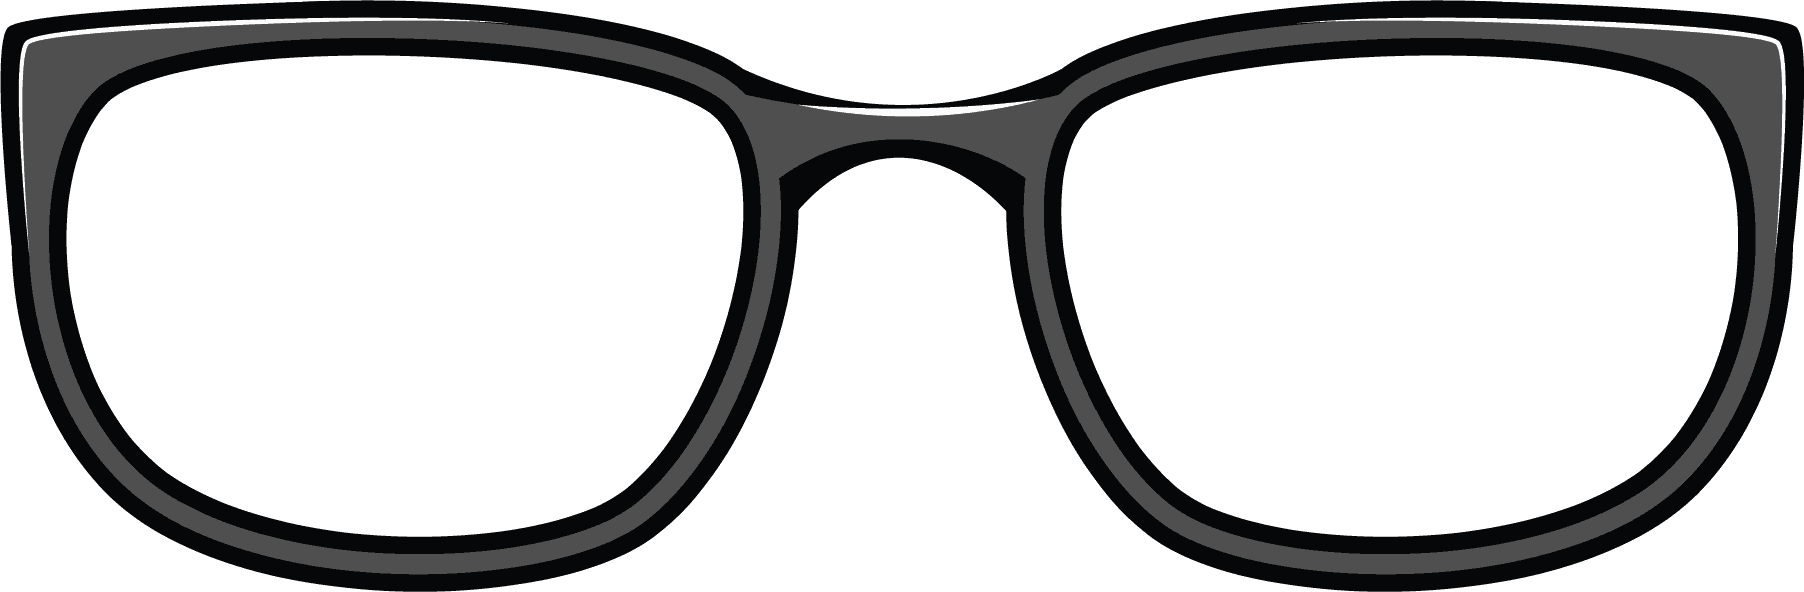 collection of glasses. Vision clipart optical